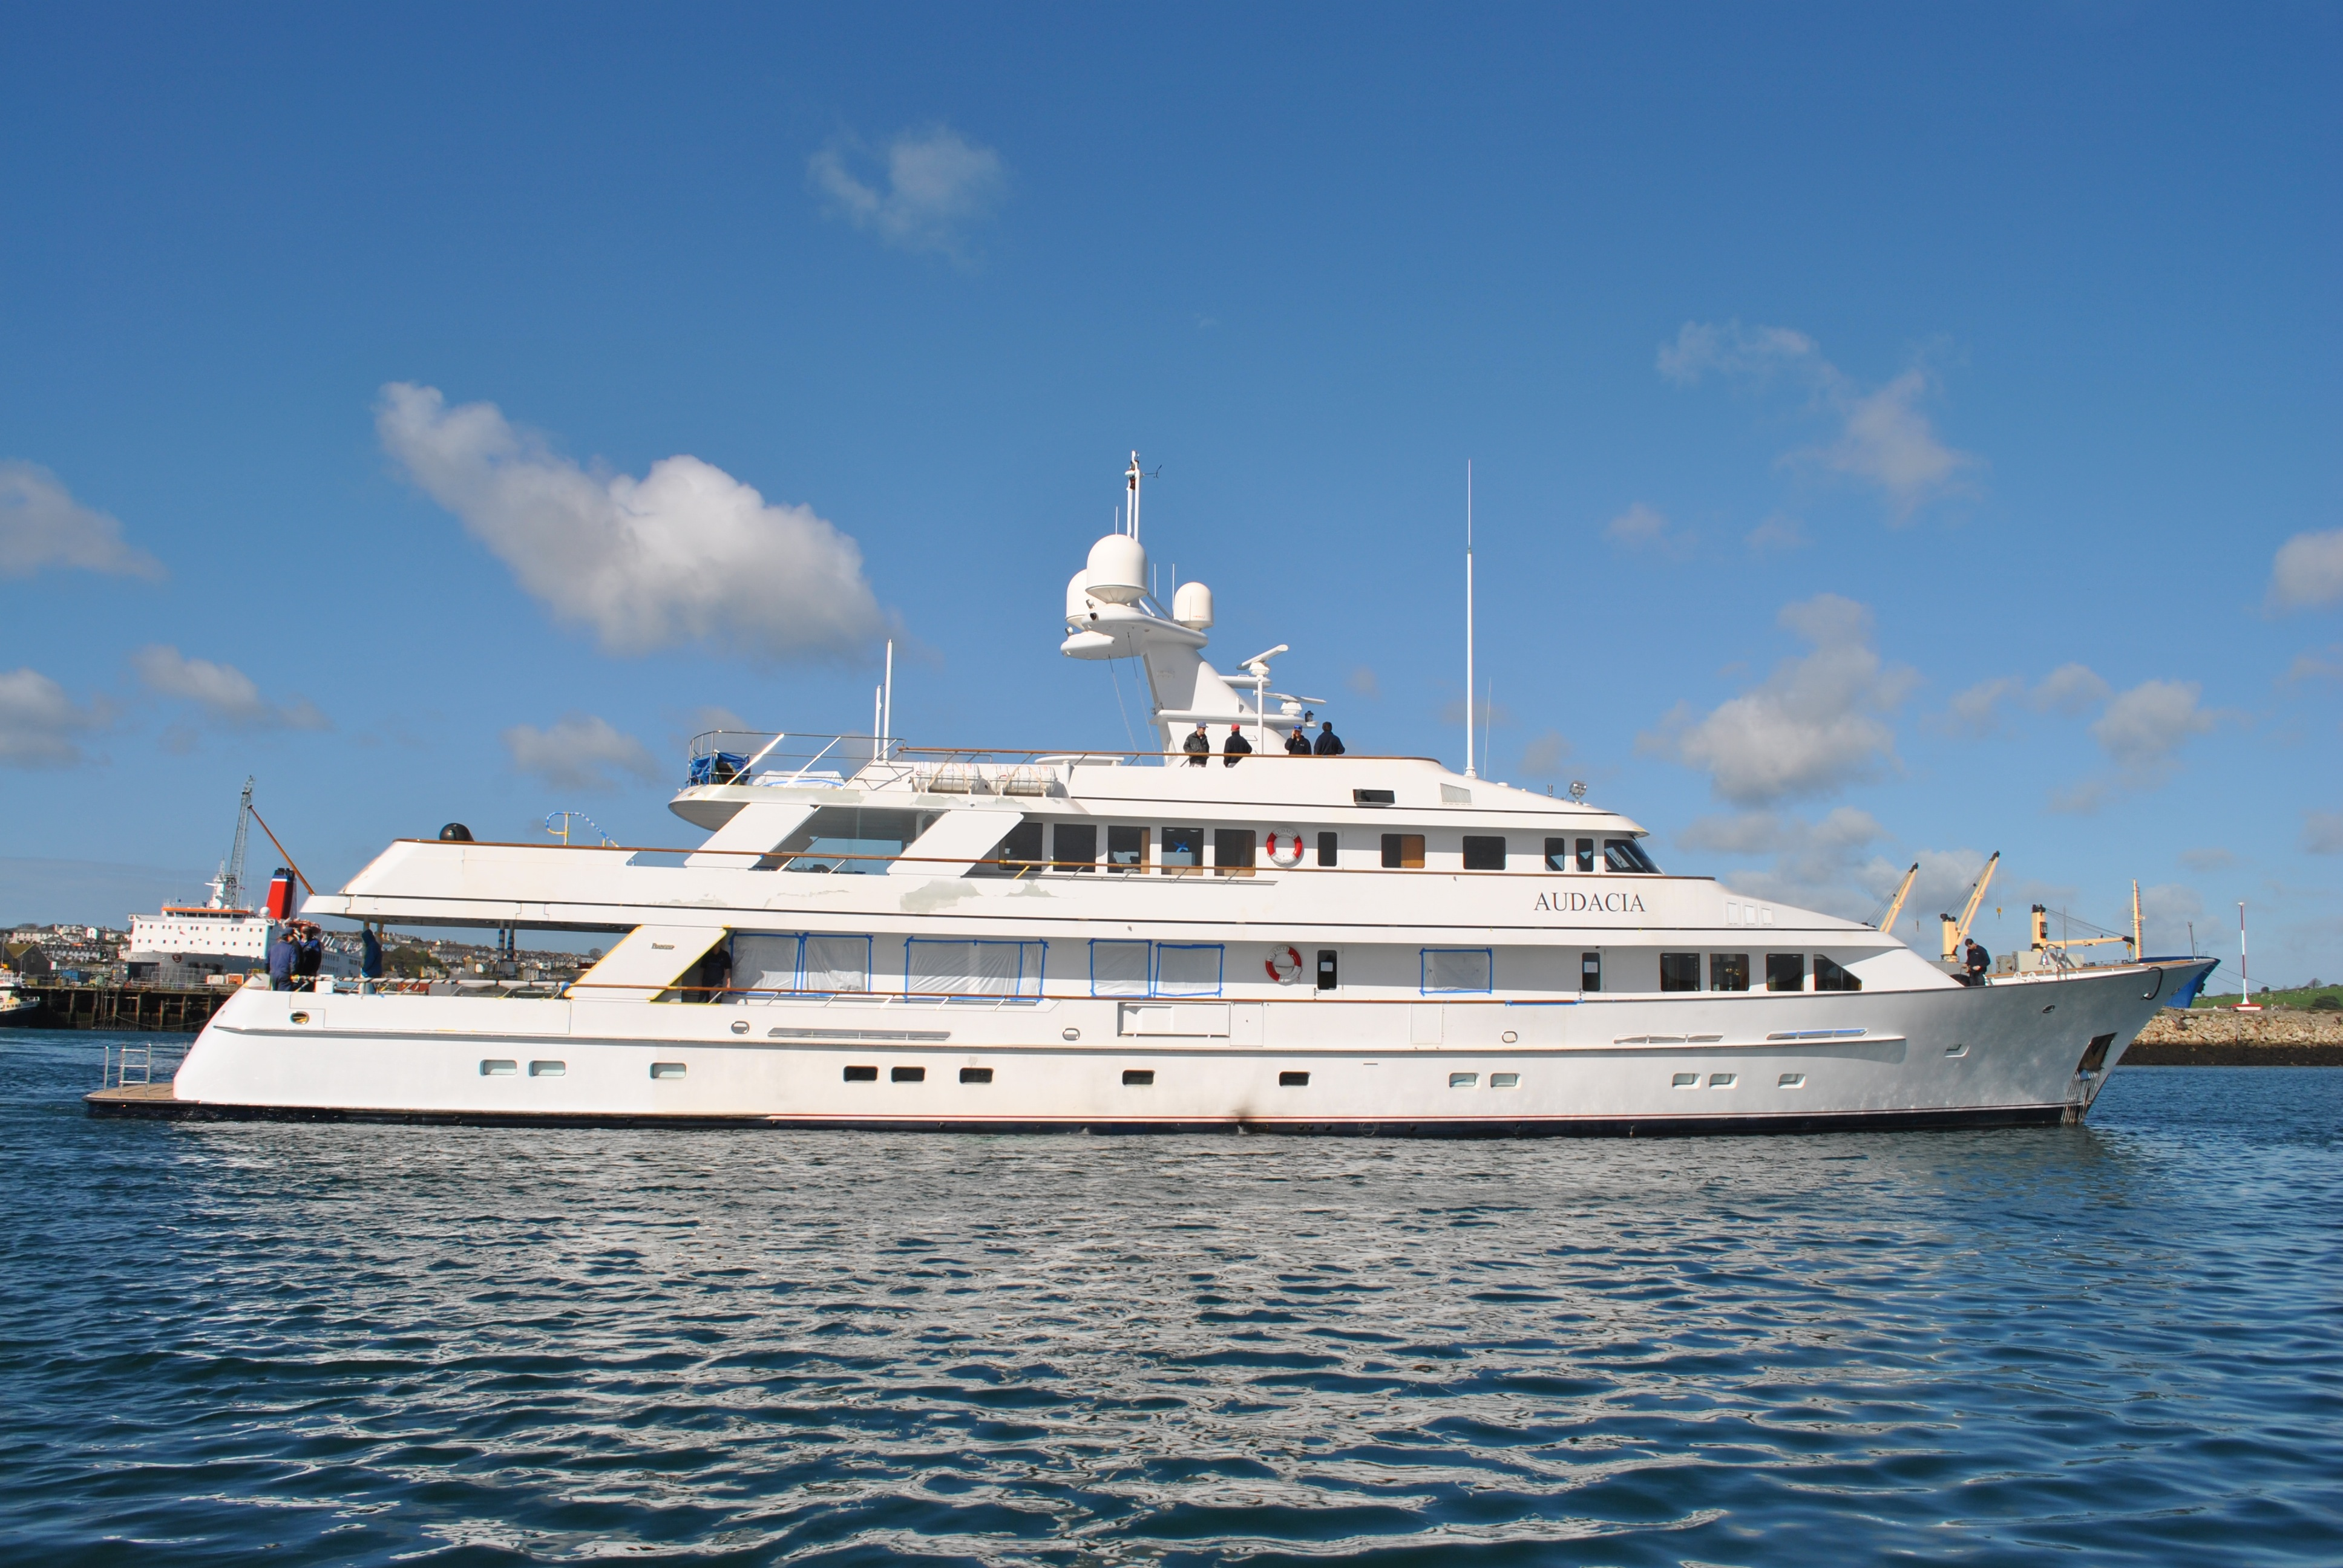 Feadship Luxury Yacht Audacia Refitted By Pendennis